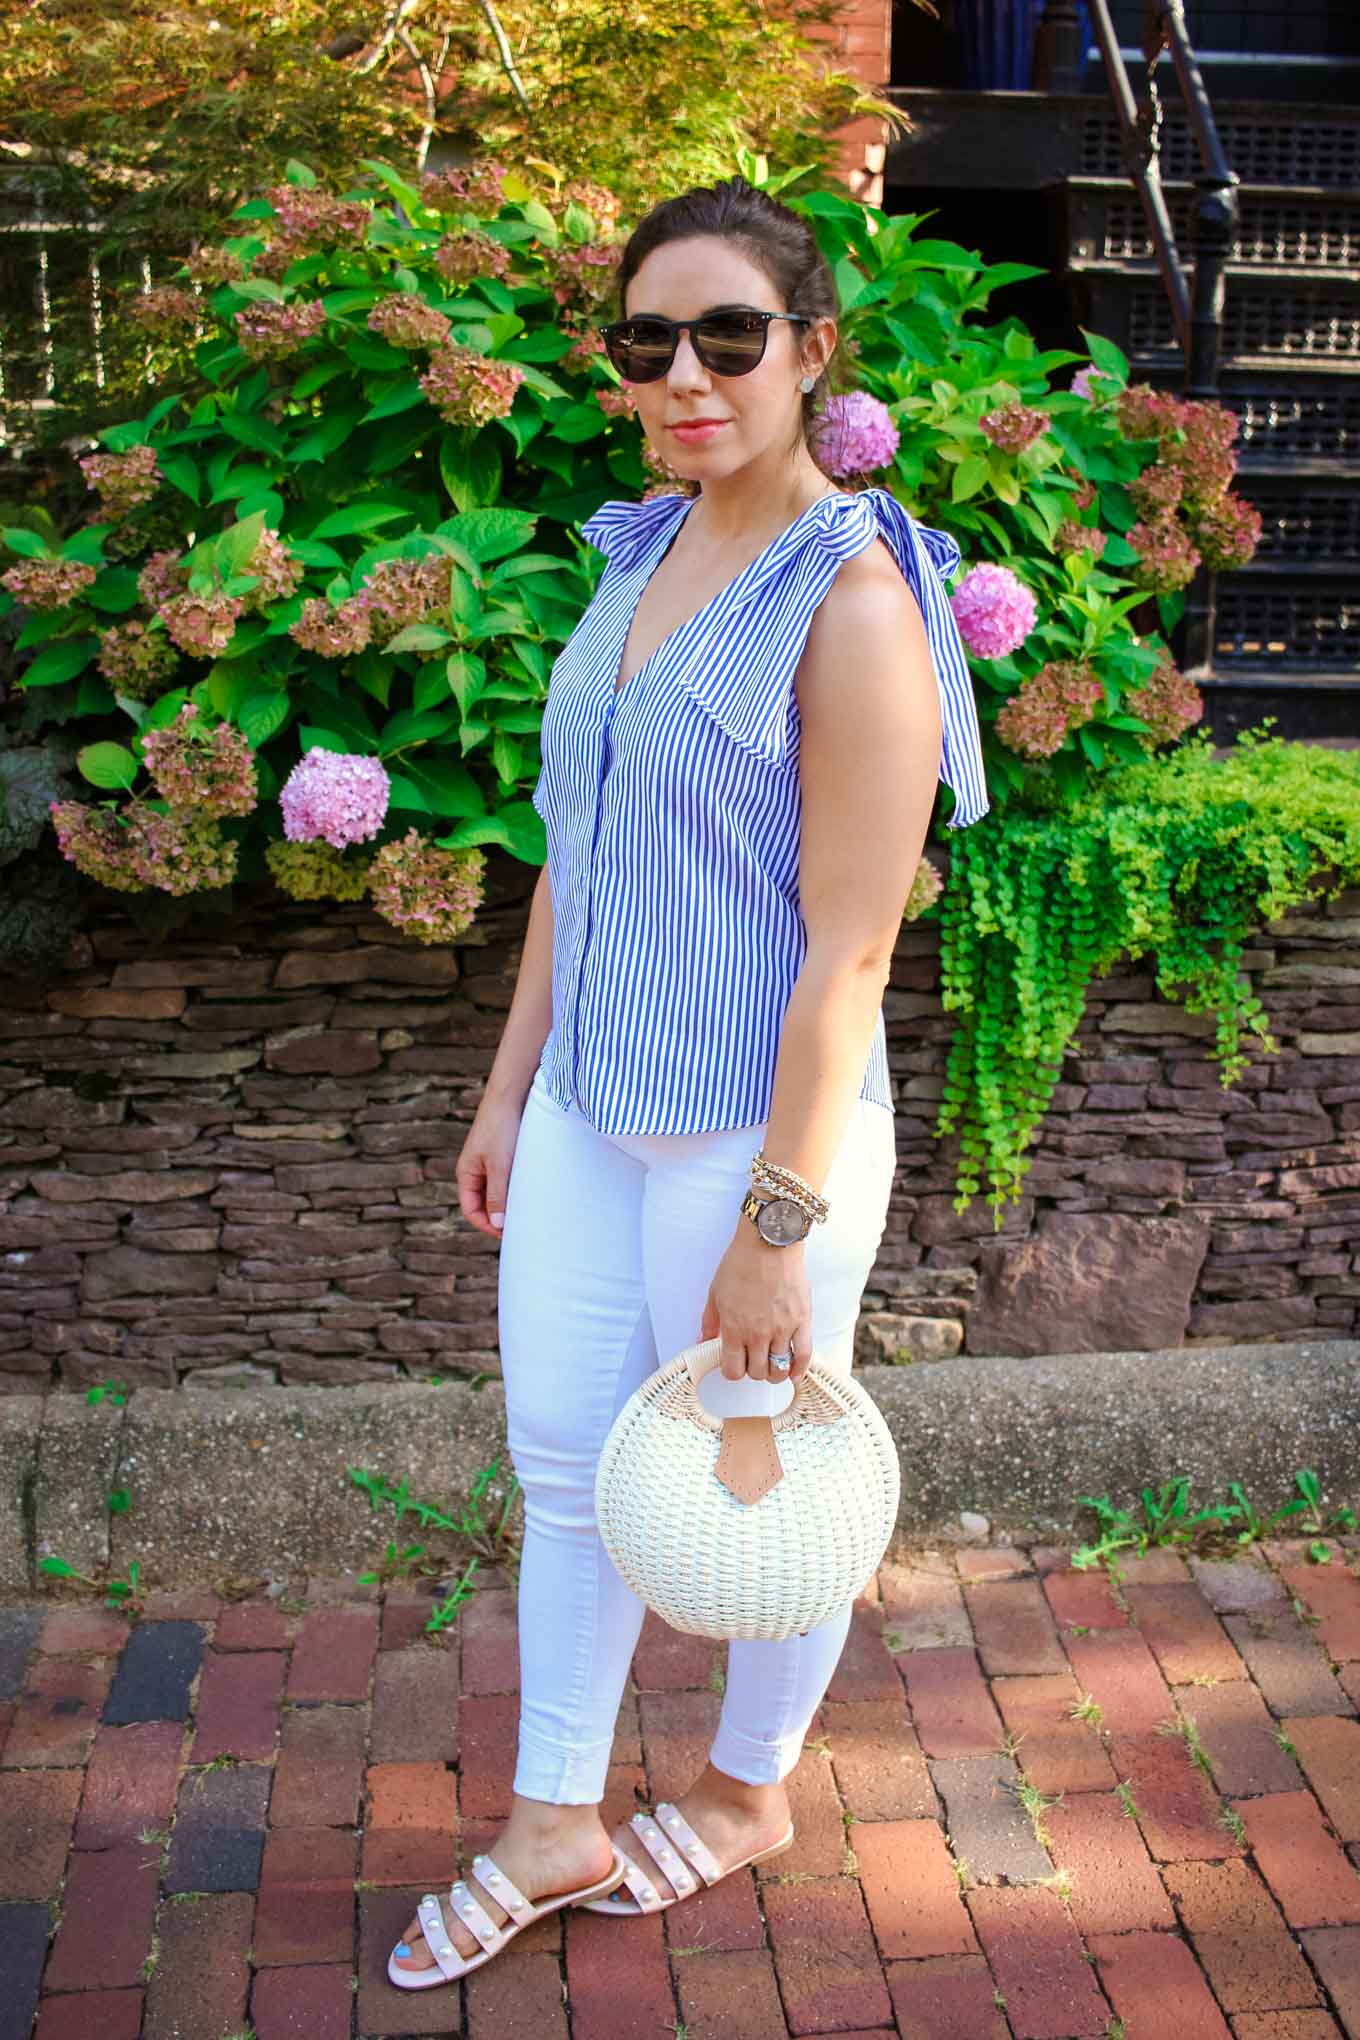 Lifestyleblogger Roxanne of Glass of Glam wearing a striped ASOS shoulder tie top